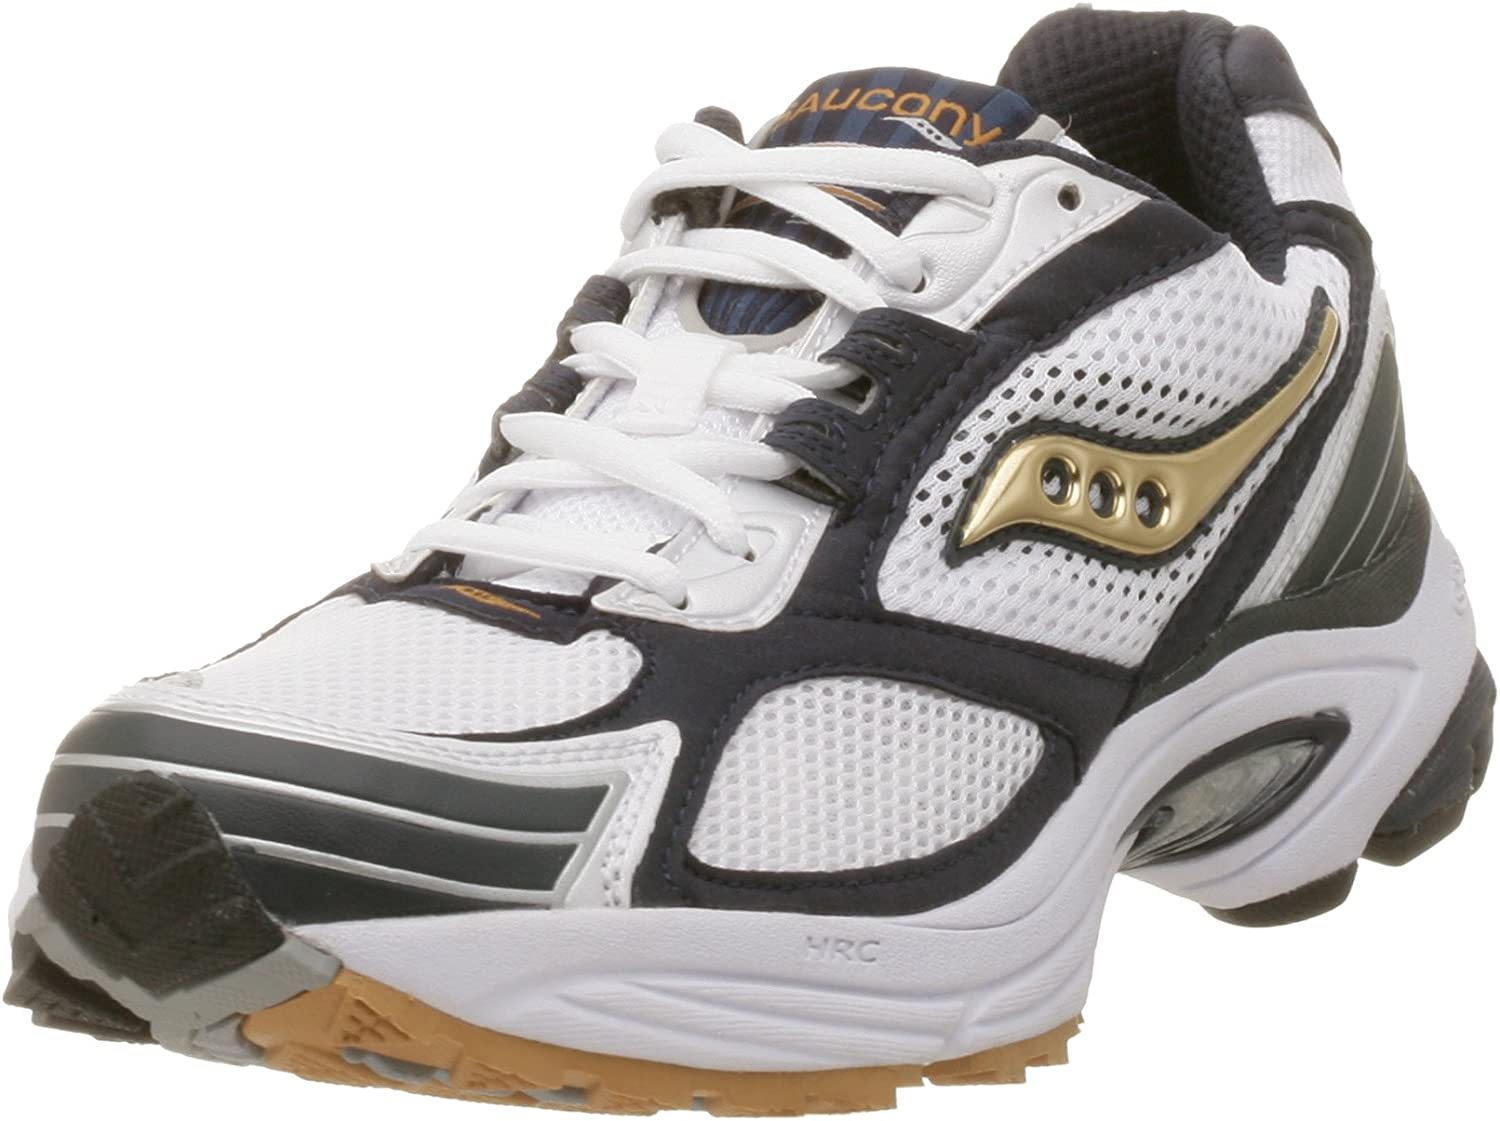 moderate stability shoes